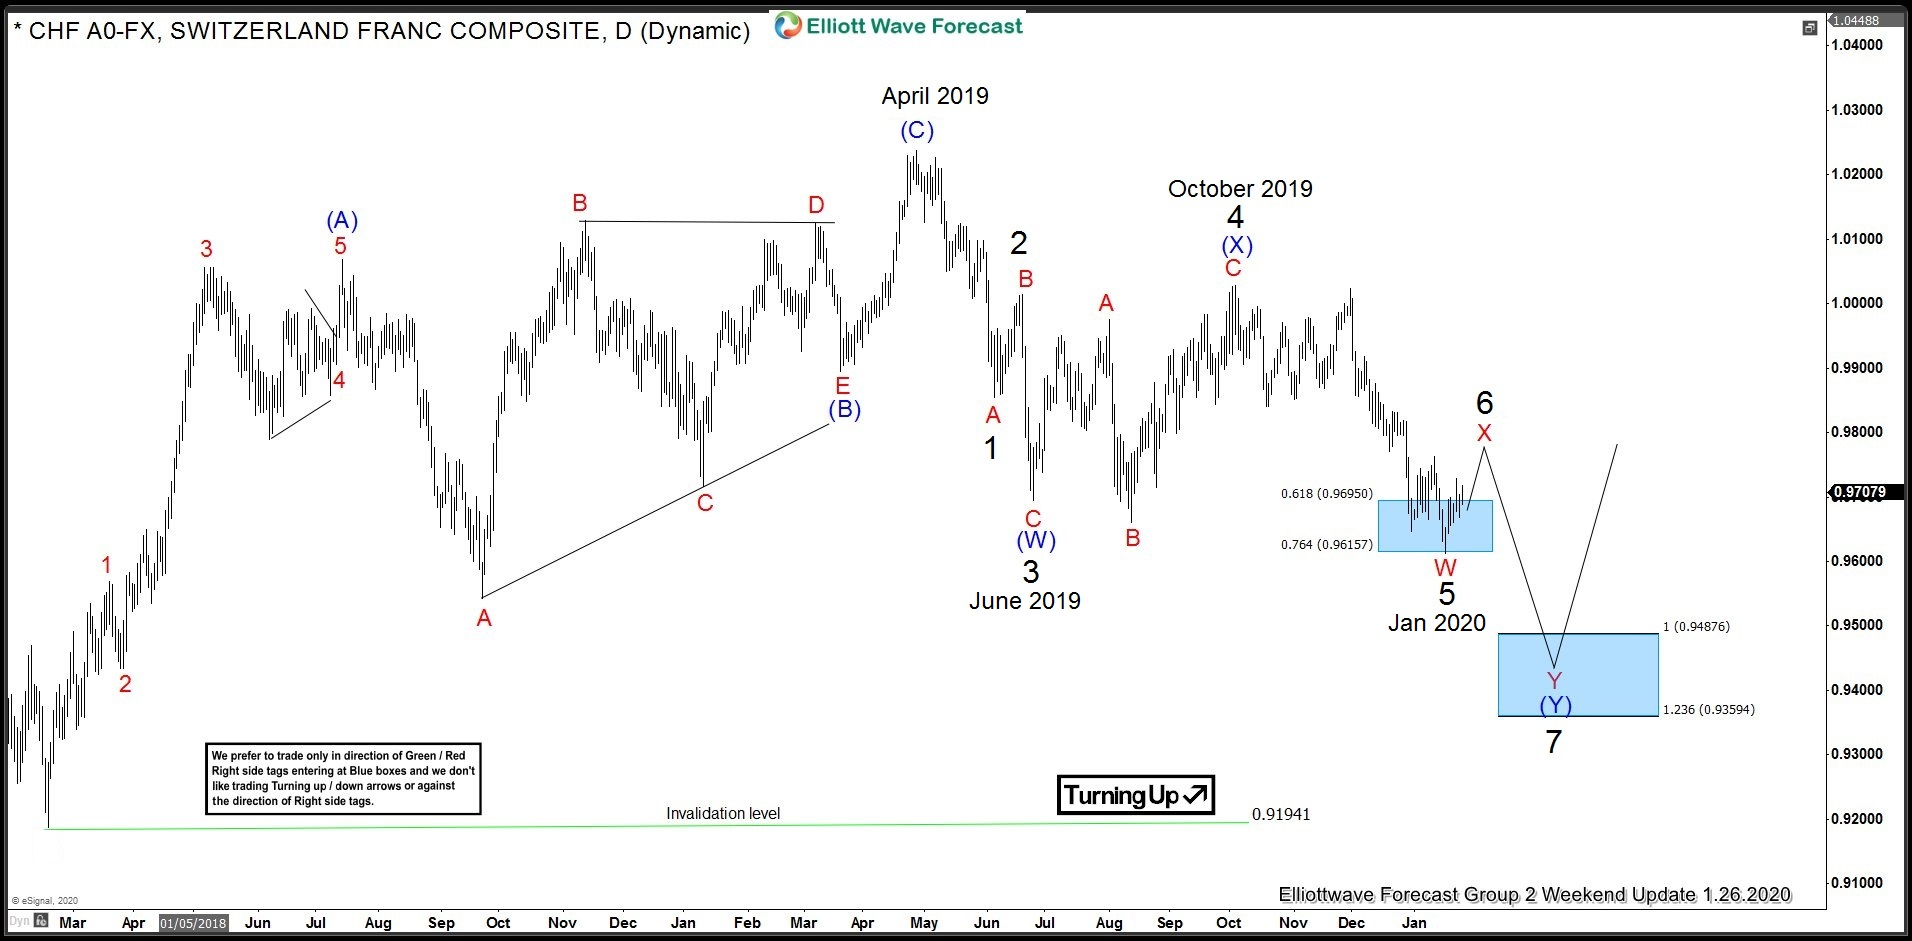 USDCHF Daily chart Elliott wave sequence down from April 2019 peak